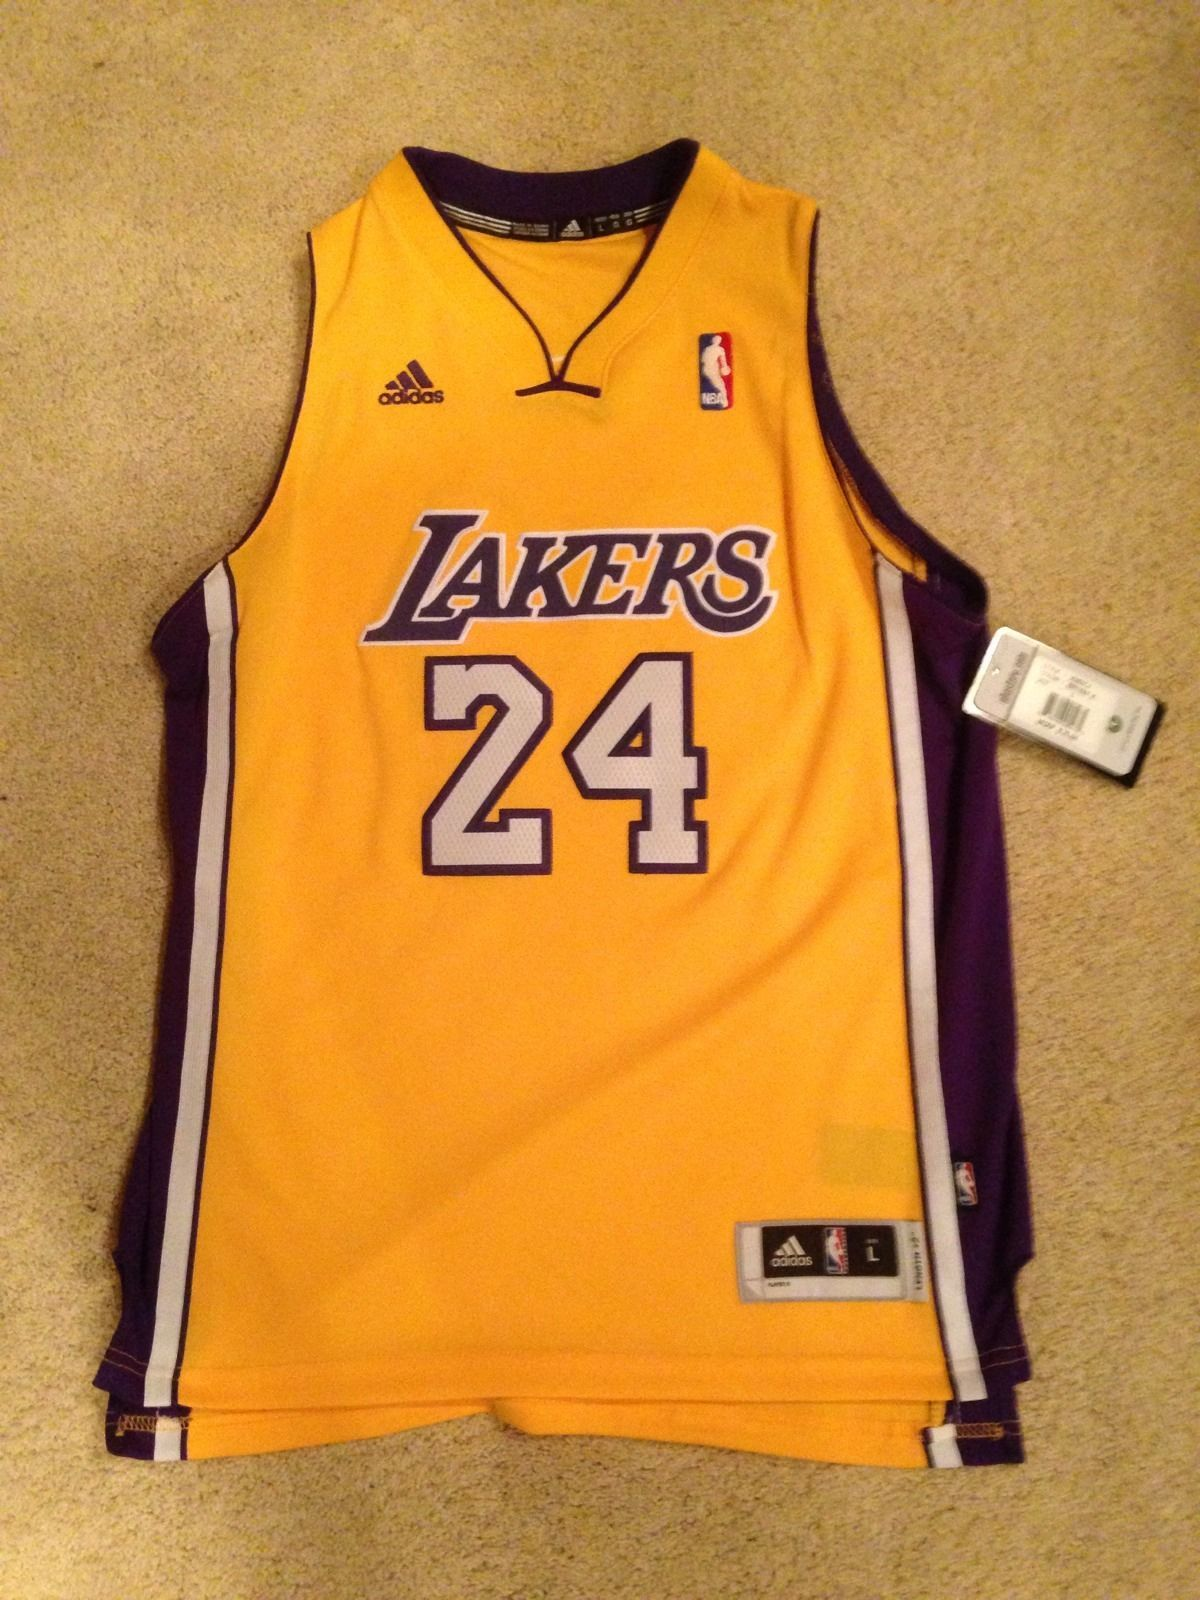 0081a80b859 NWT KOBE BRYANT LOS ANGELES LAKERS ADIDAS JERSEY SEWN YOUTH Sz Large 2  RV 75. Find this Pin and more ...